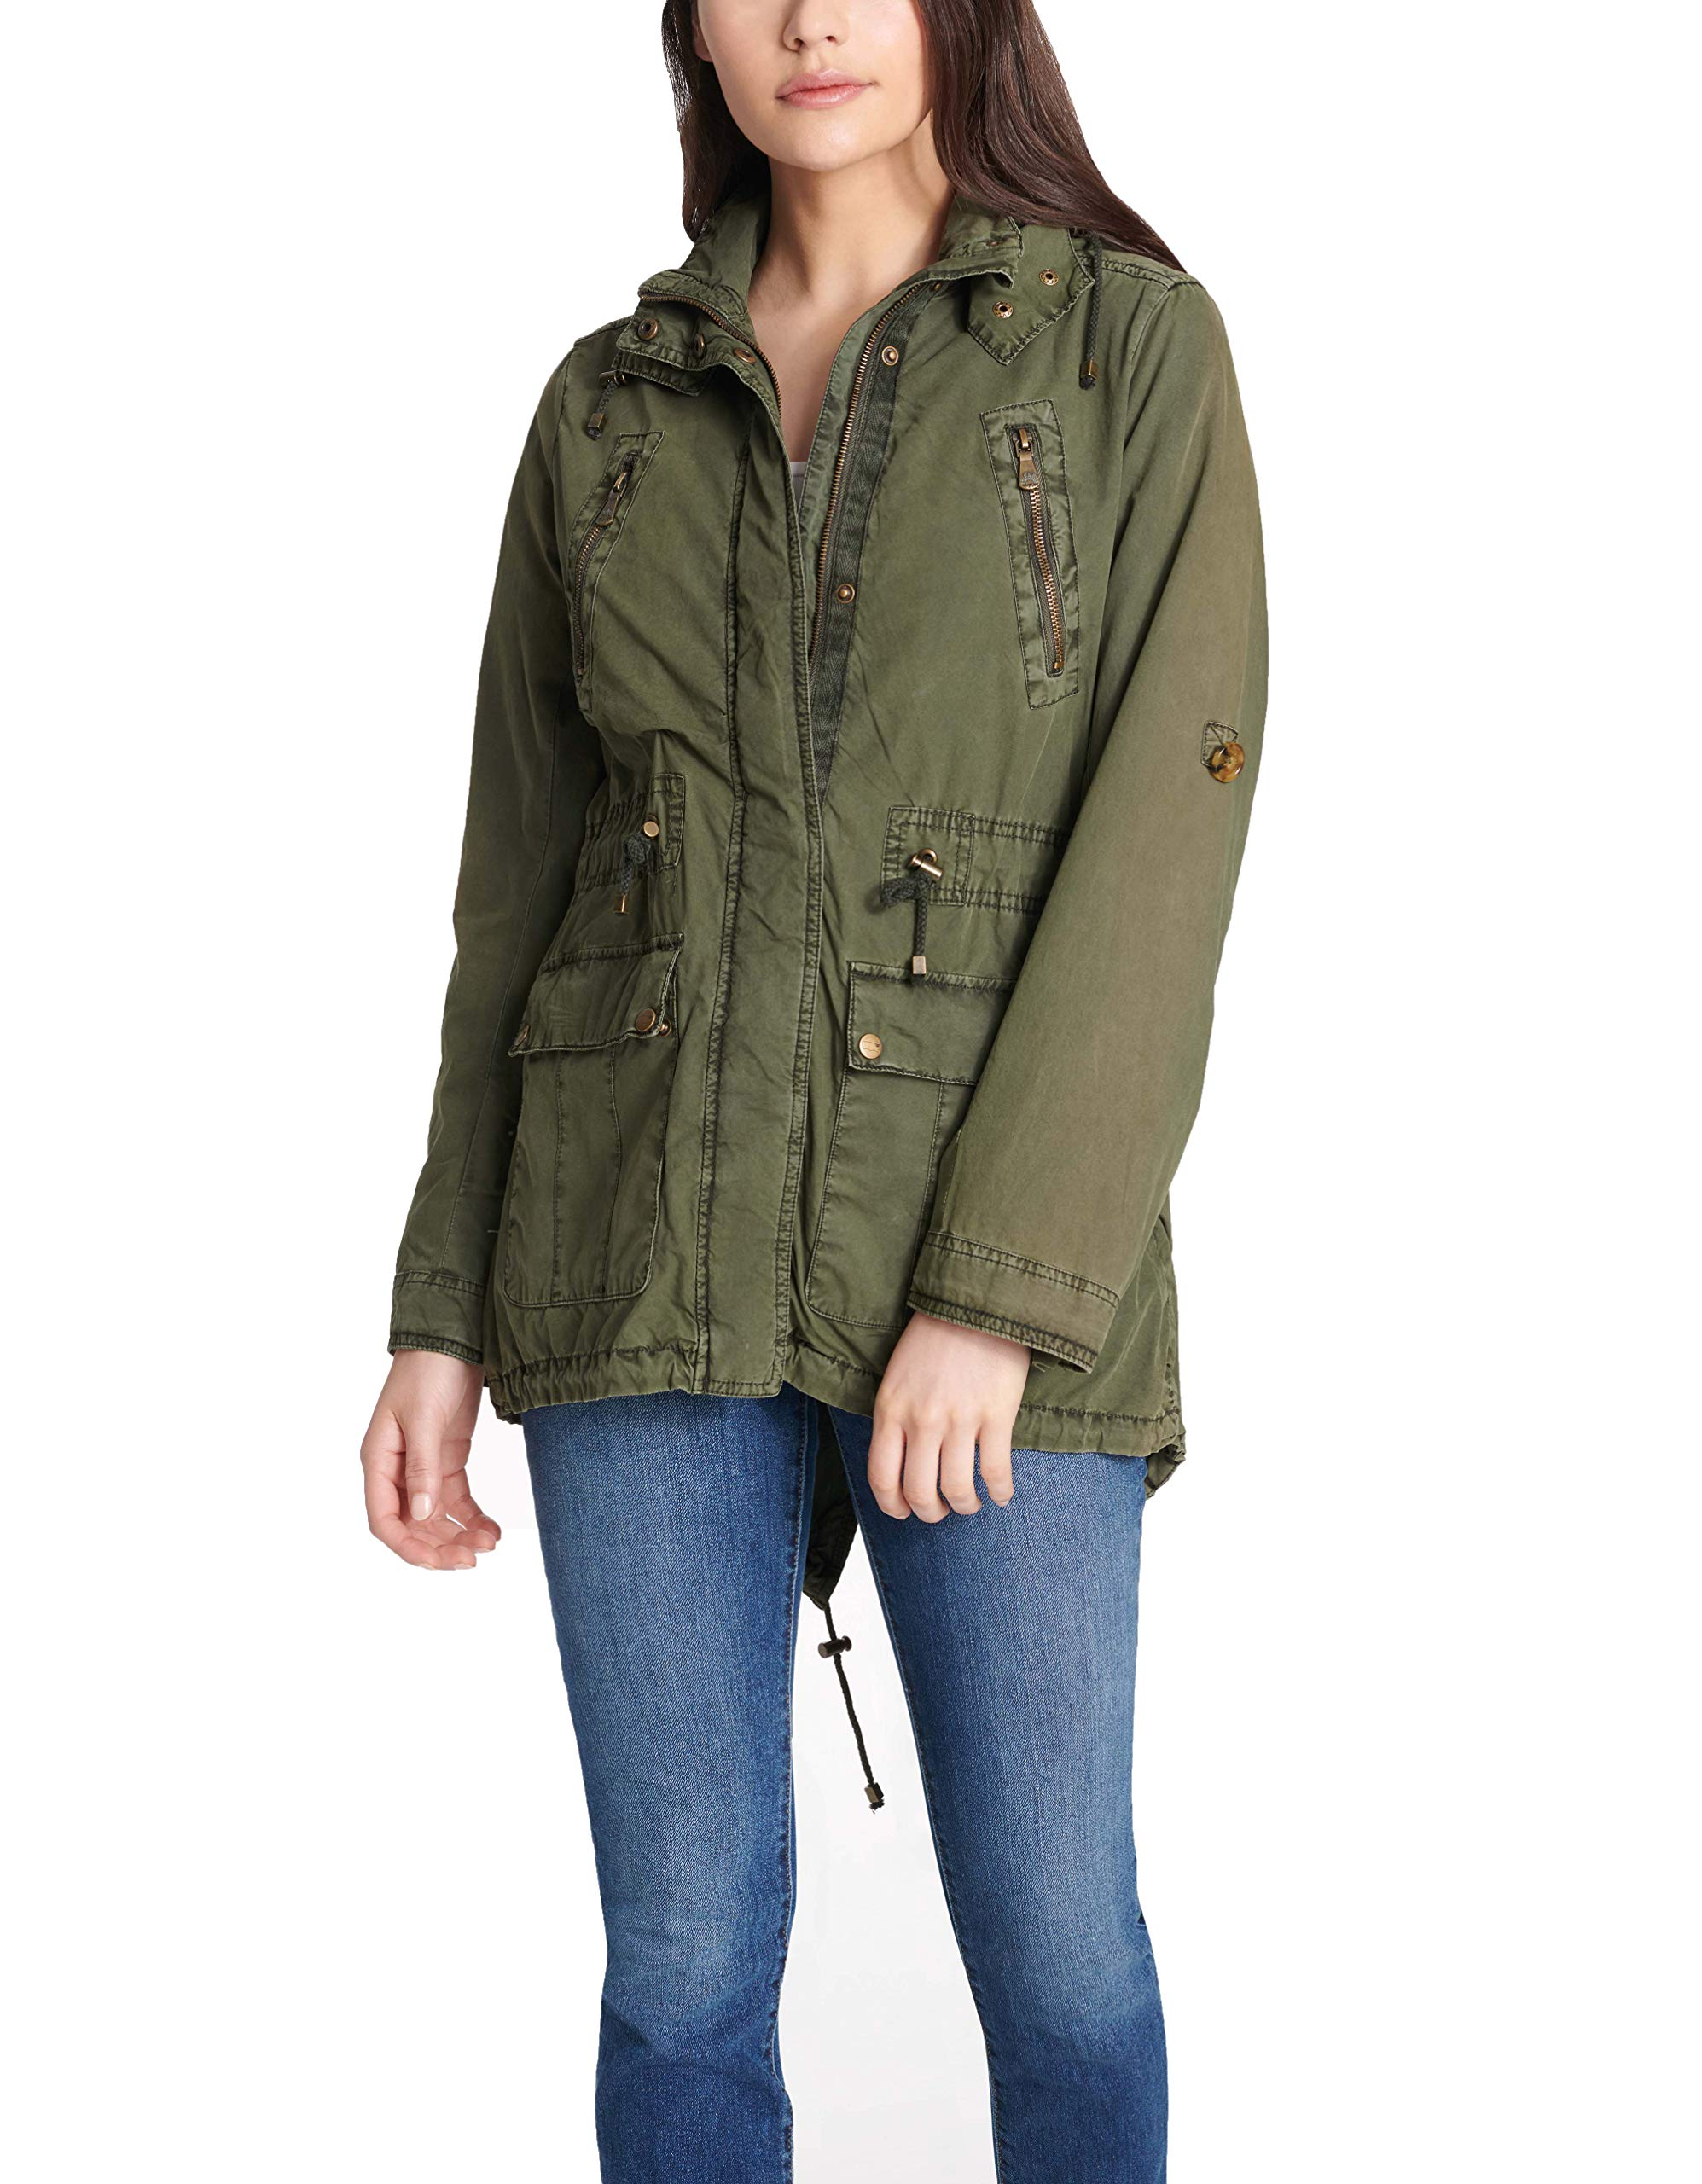 Levi's Women's Lightweight Cotton Hooded Anorak, Army Green, XX-Large by Levi's